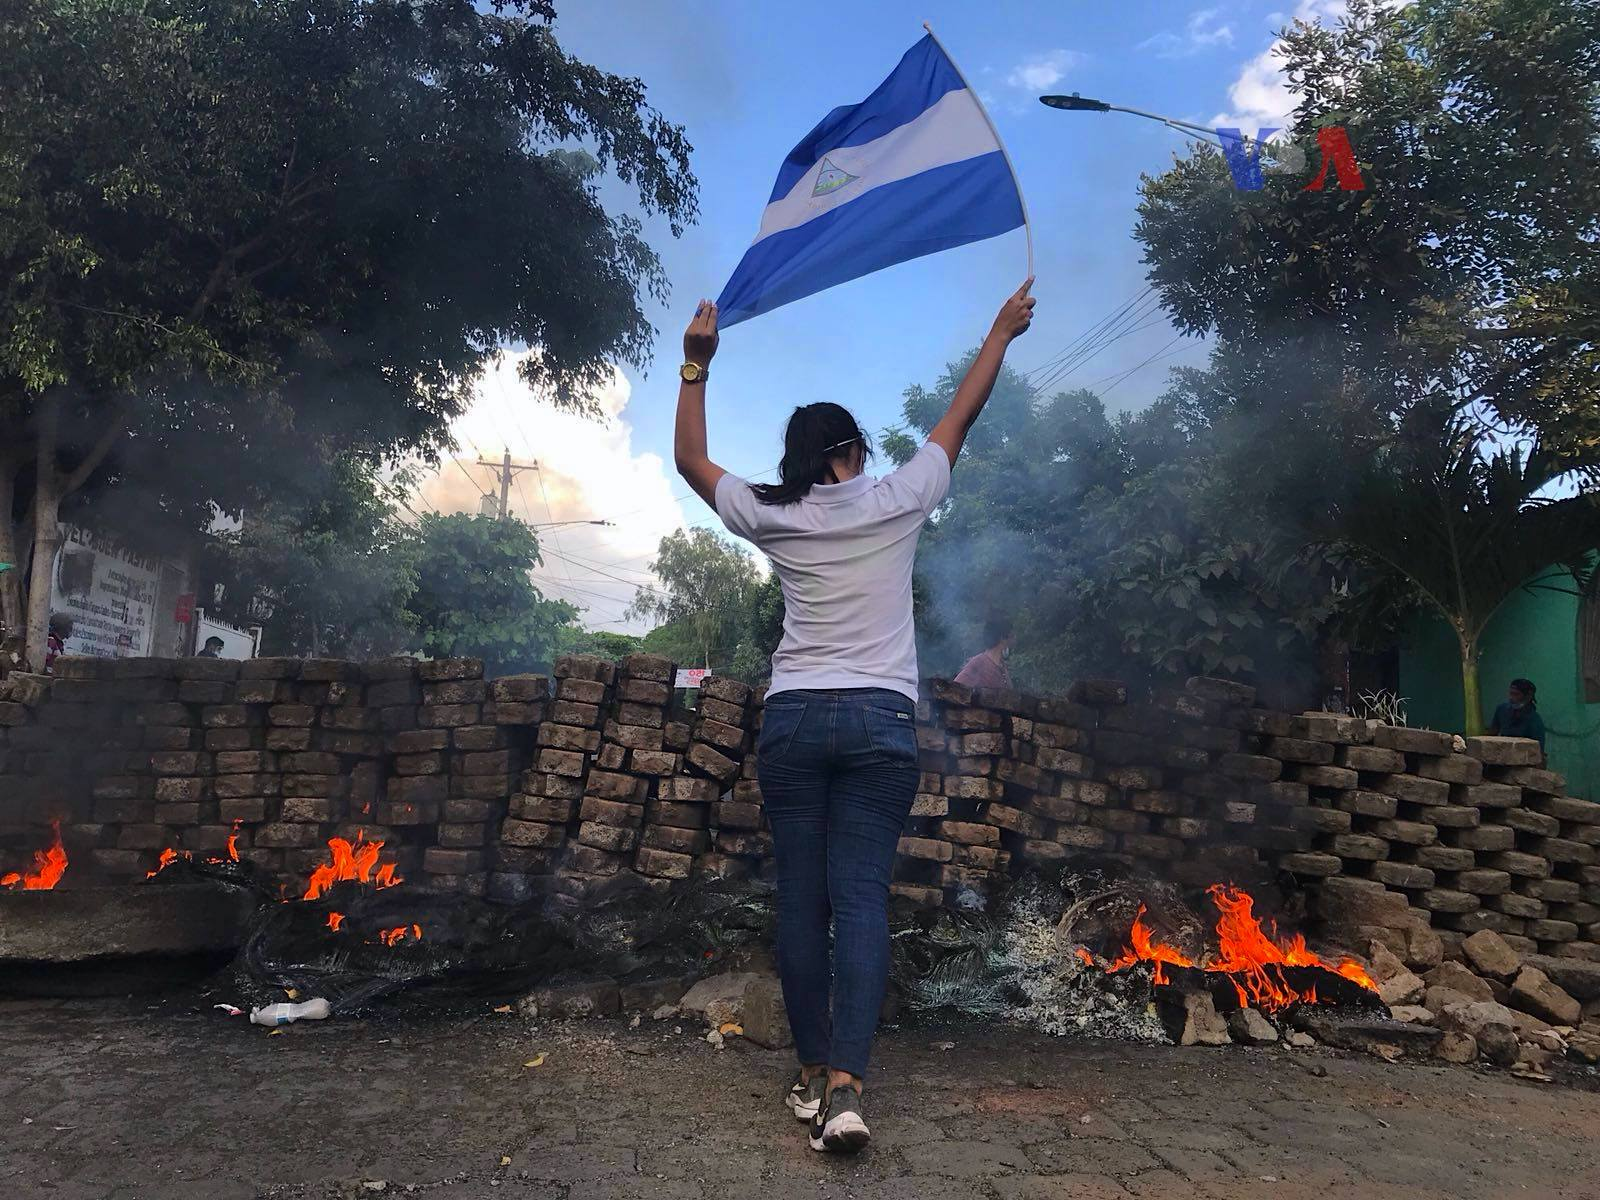 woman and nicaraguan flag at protests with burning barricade